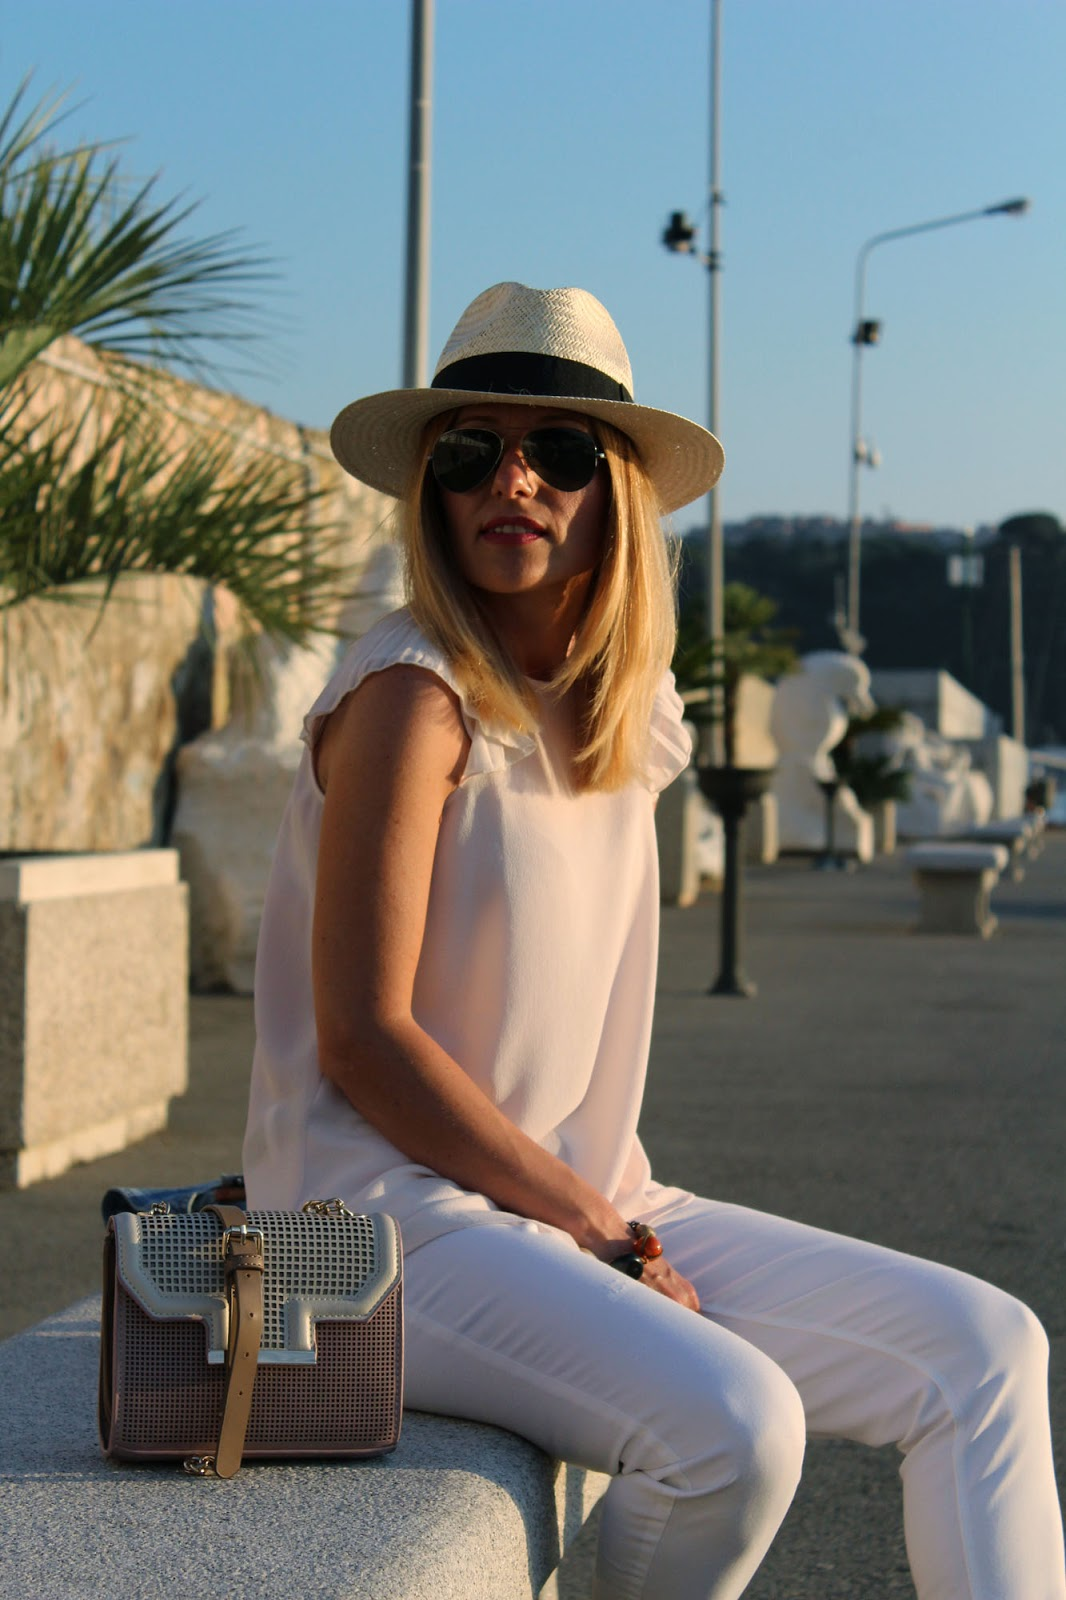 Eniwhere Fashion - Elba Porto Azzurro - Skinny jeans white and Panama Hat